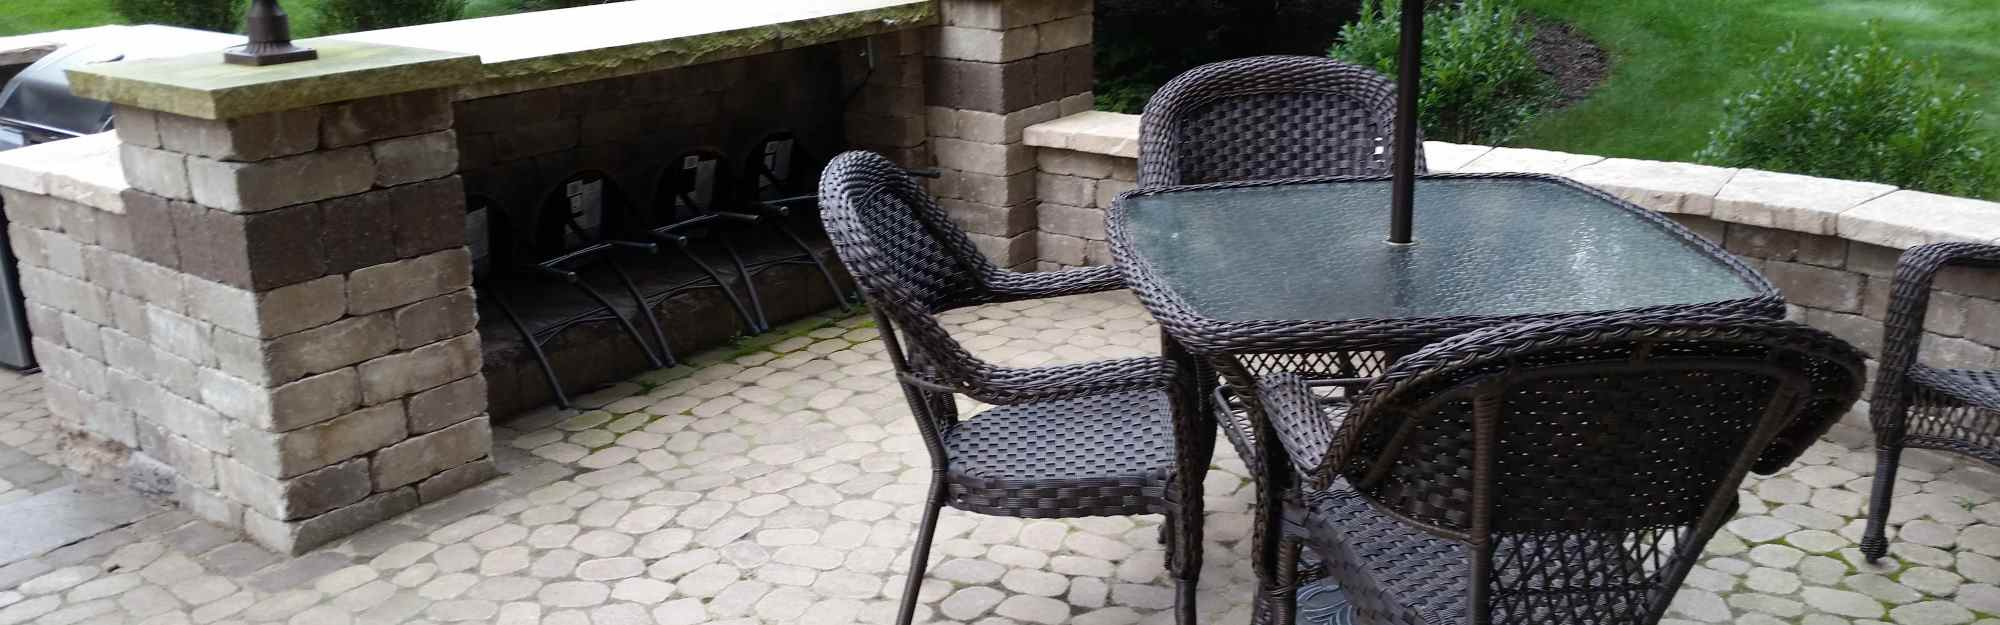 Stone Patio with Patio Table and Chairs